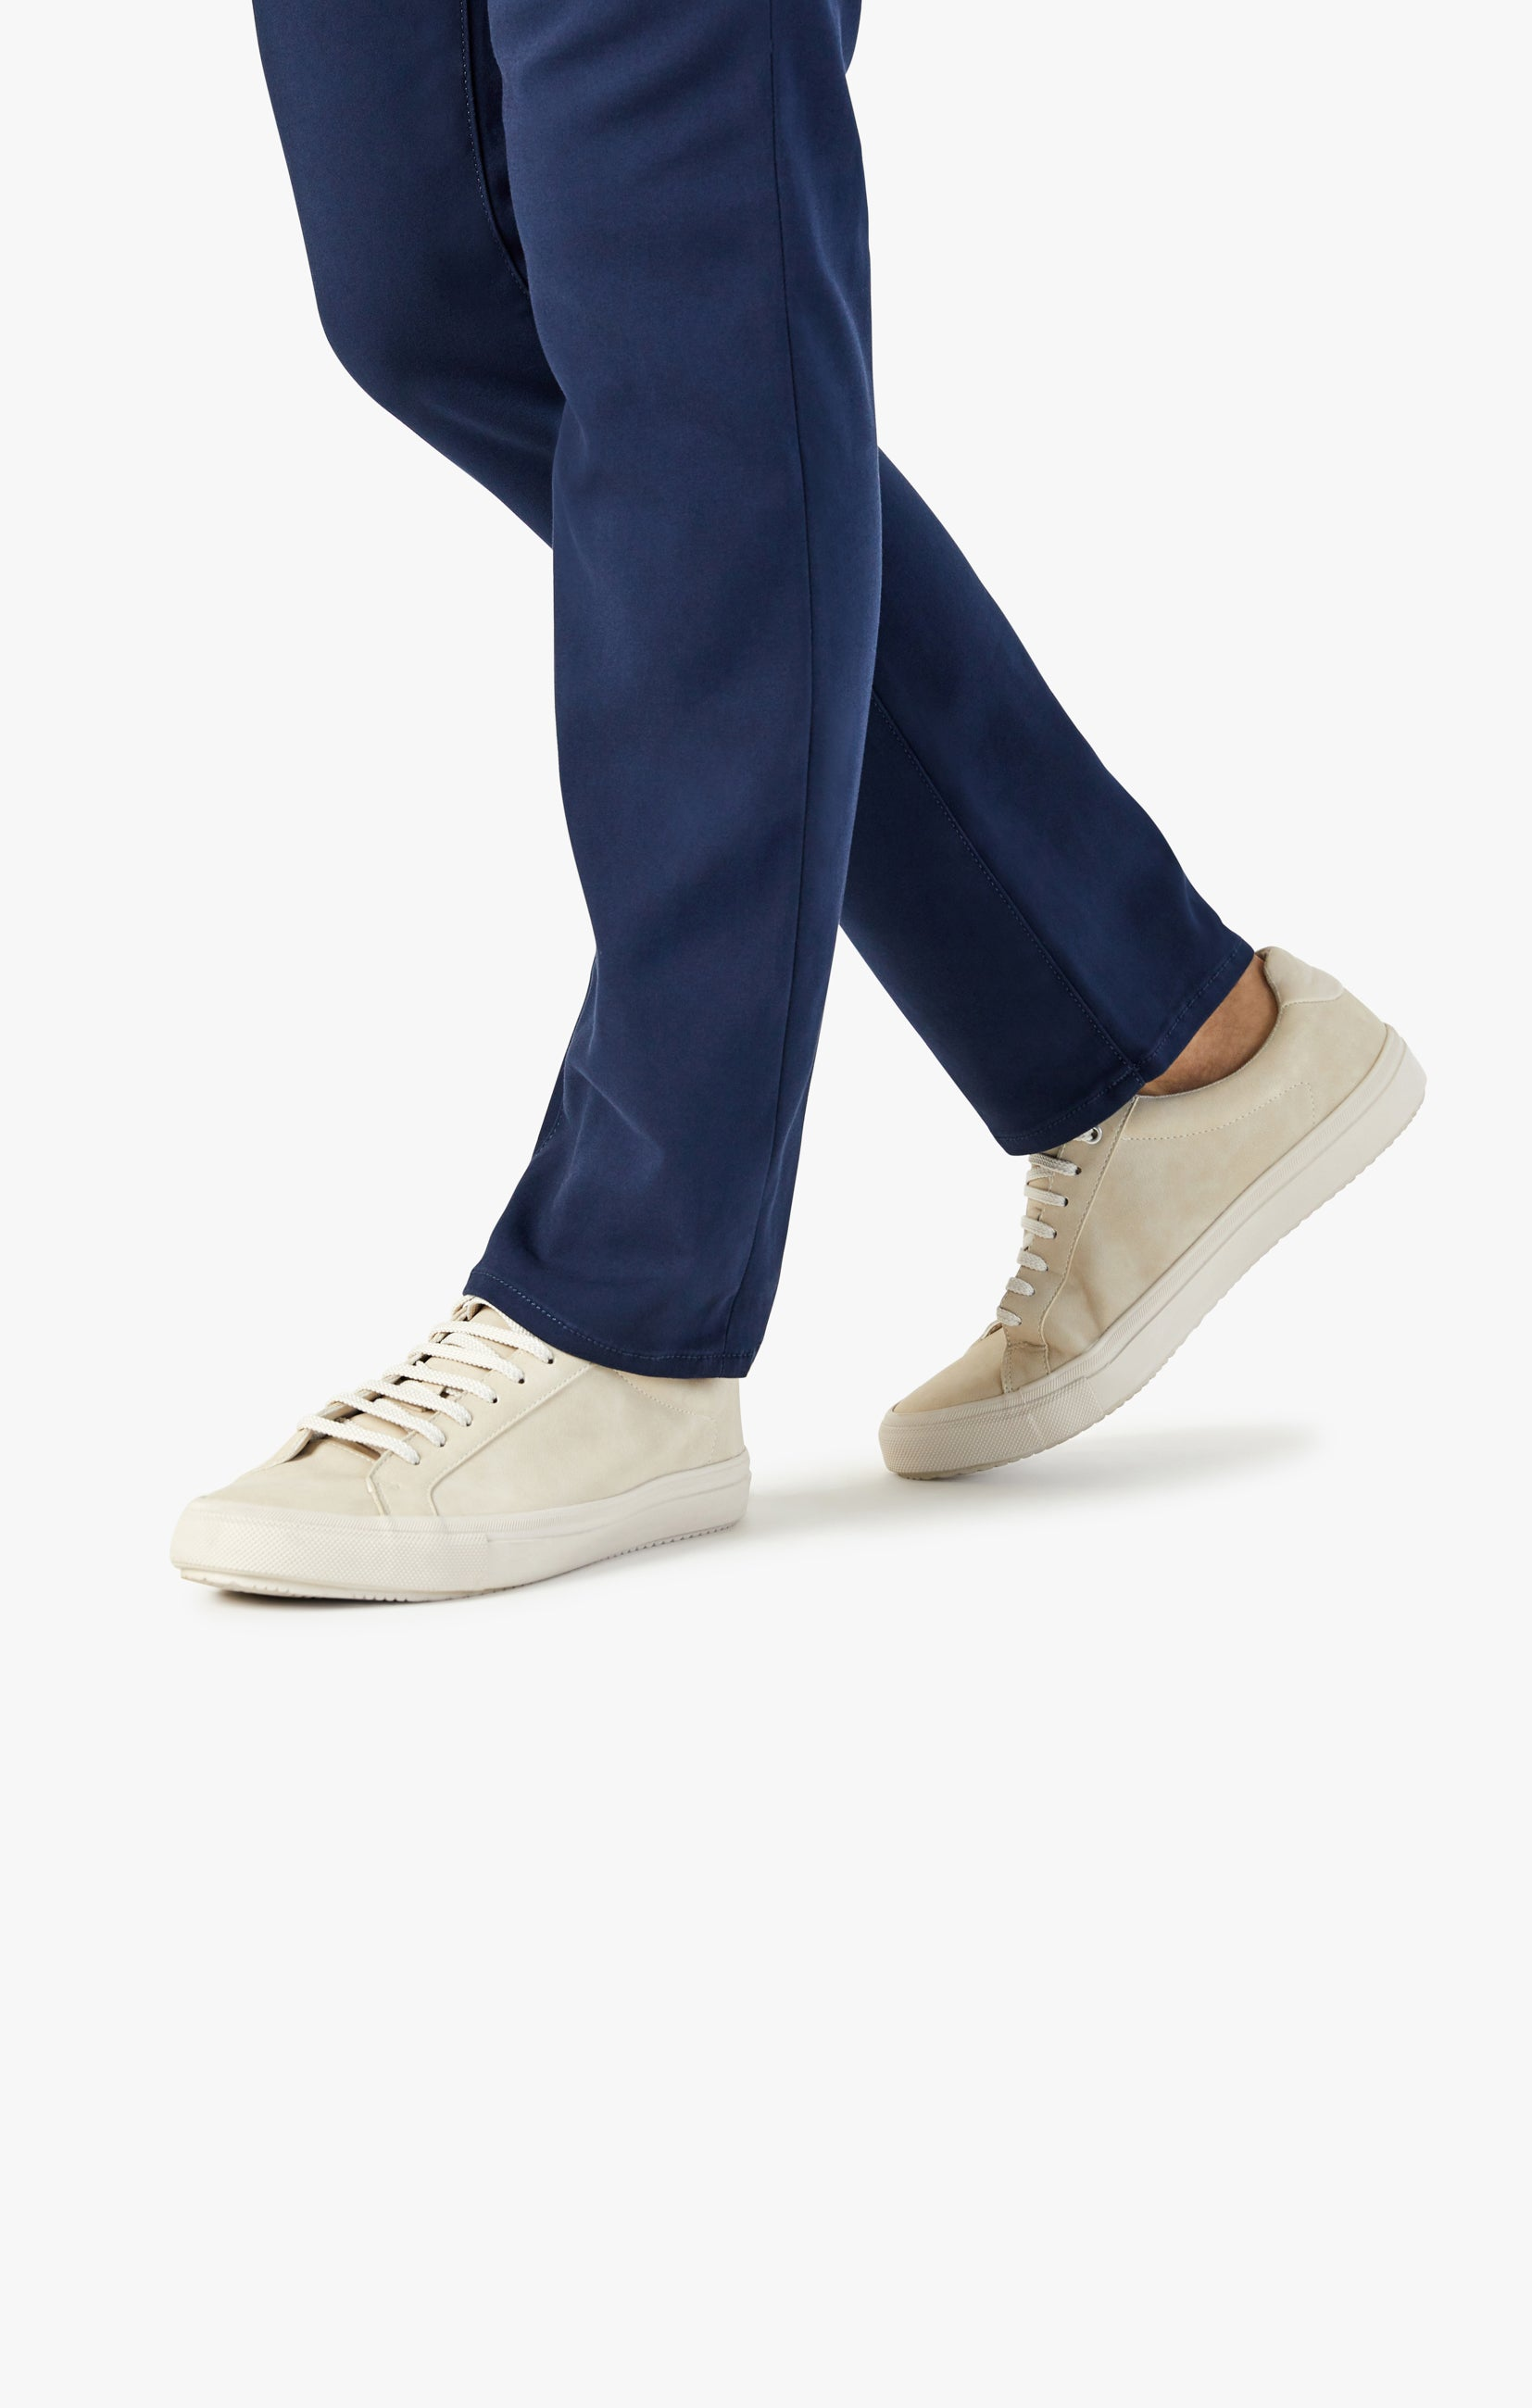 Verona Chino Pants in Navy High Flyer Image 6